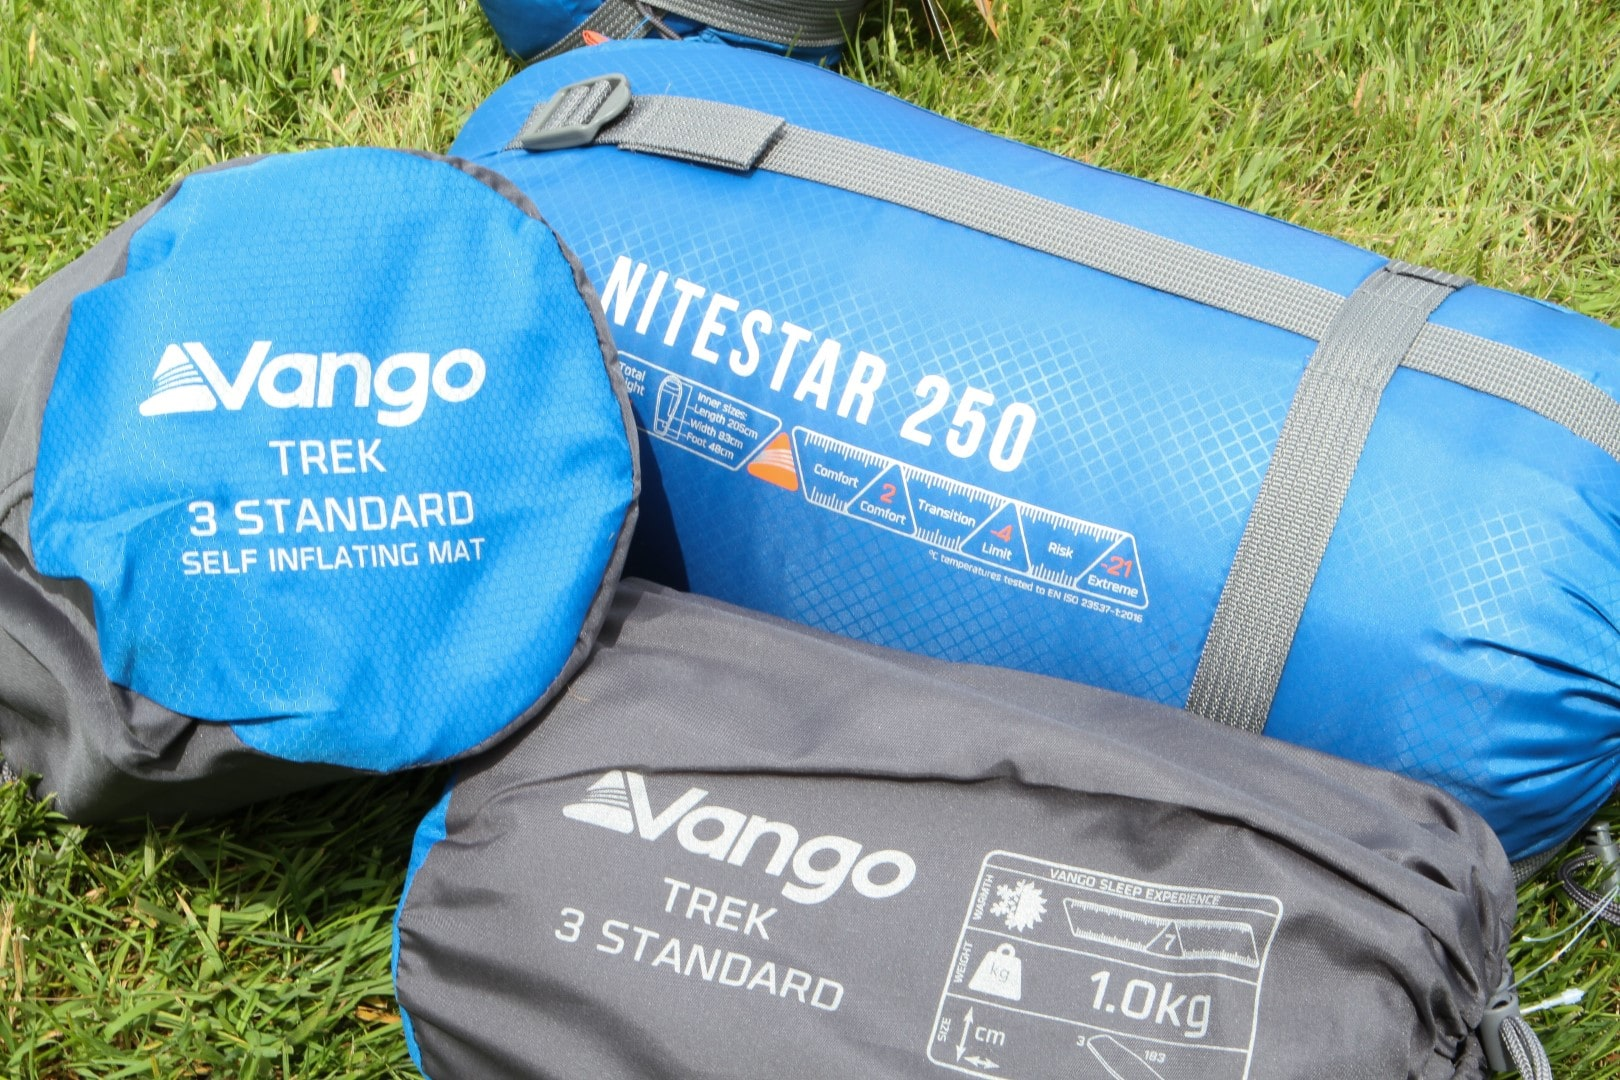 Vango nite star sleeping bag